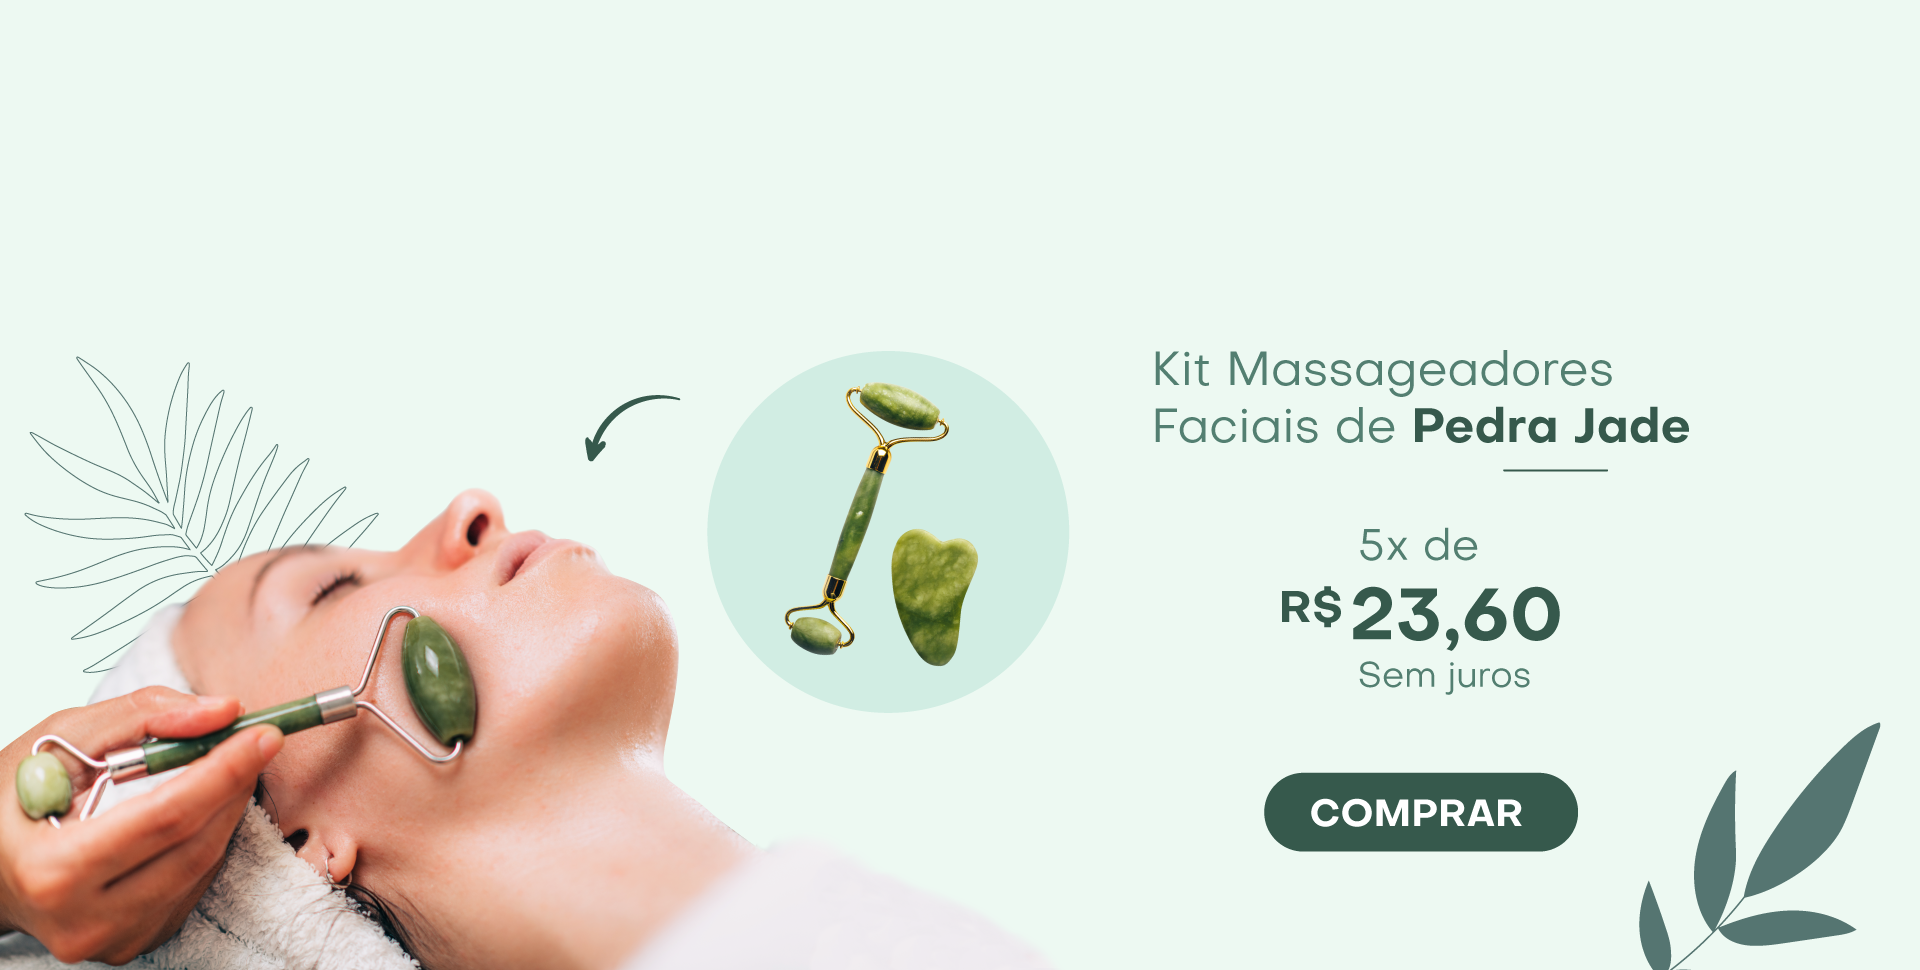 Kit Massageadores Faciais de Pedra Jade